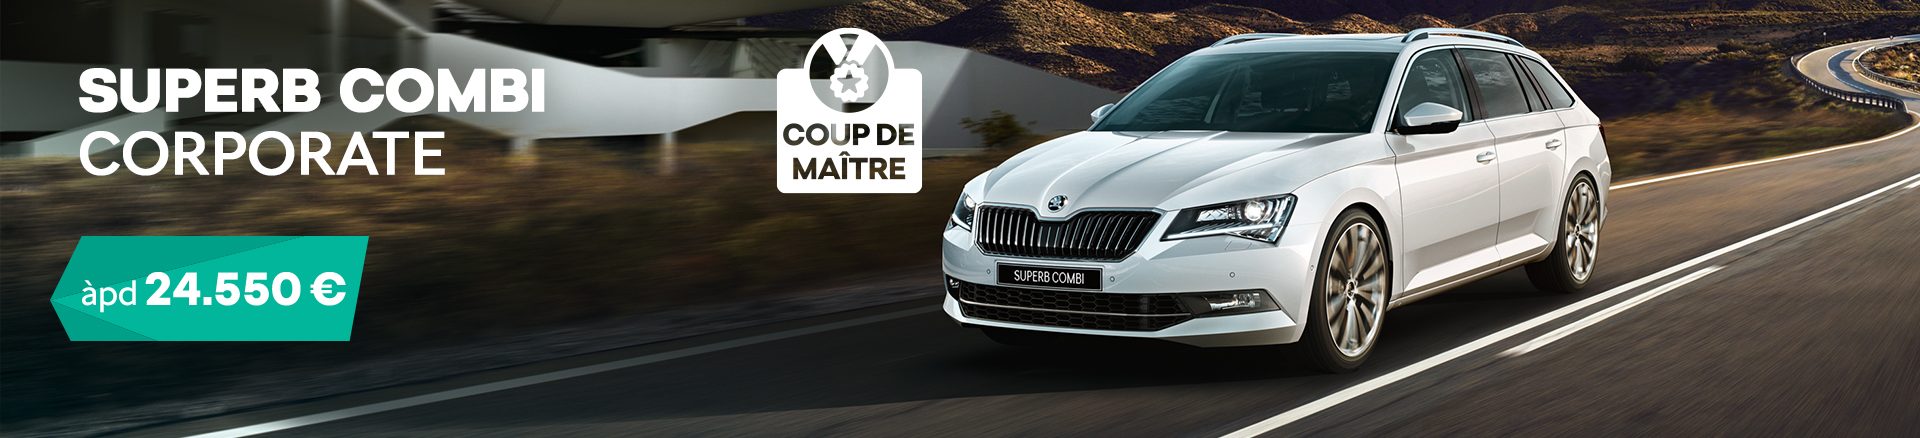 SAN Mazuin Skoda Condition Salon Edition Black